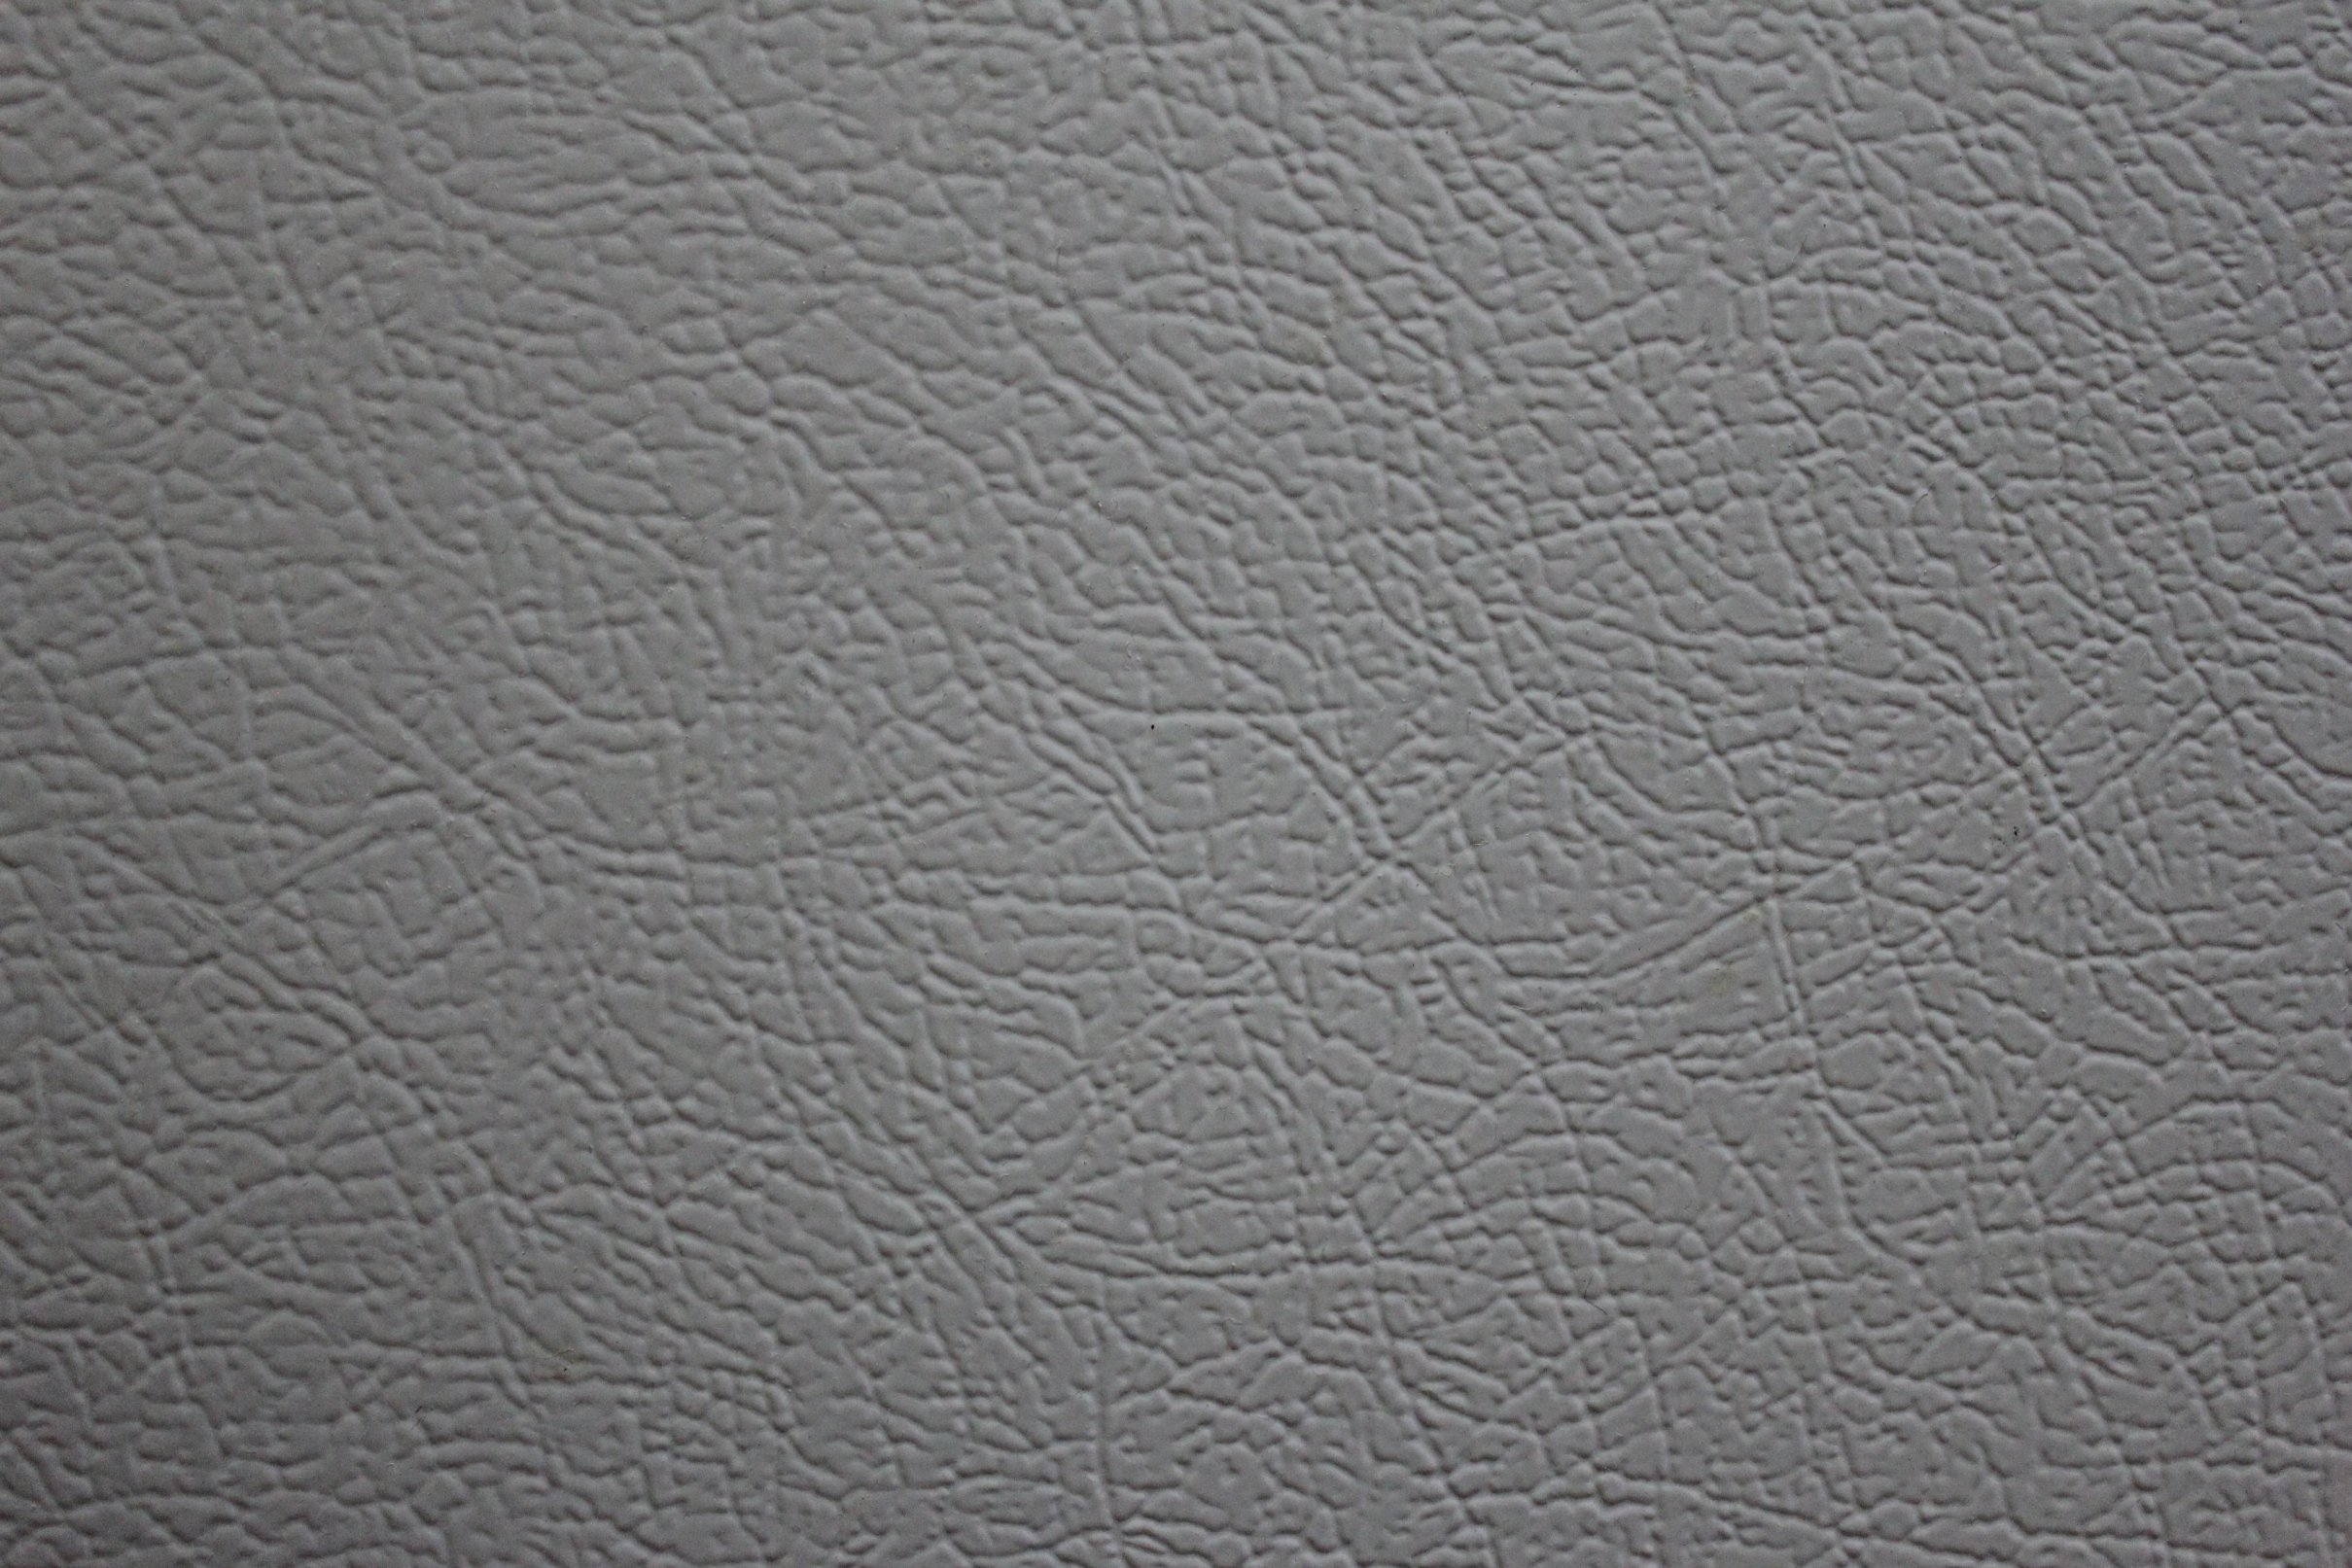 File:Gfp-fridge-door-texture.jpg & File:Gfp-fridge-door-texture.jpg - Wikimedia Commons Pezcame.Com